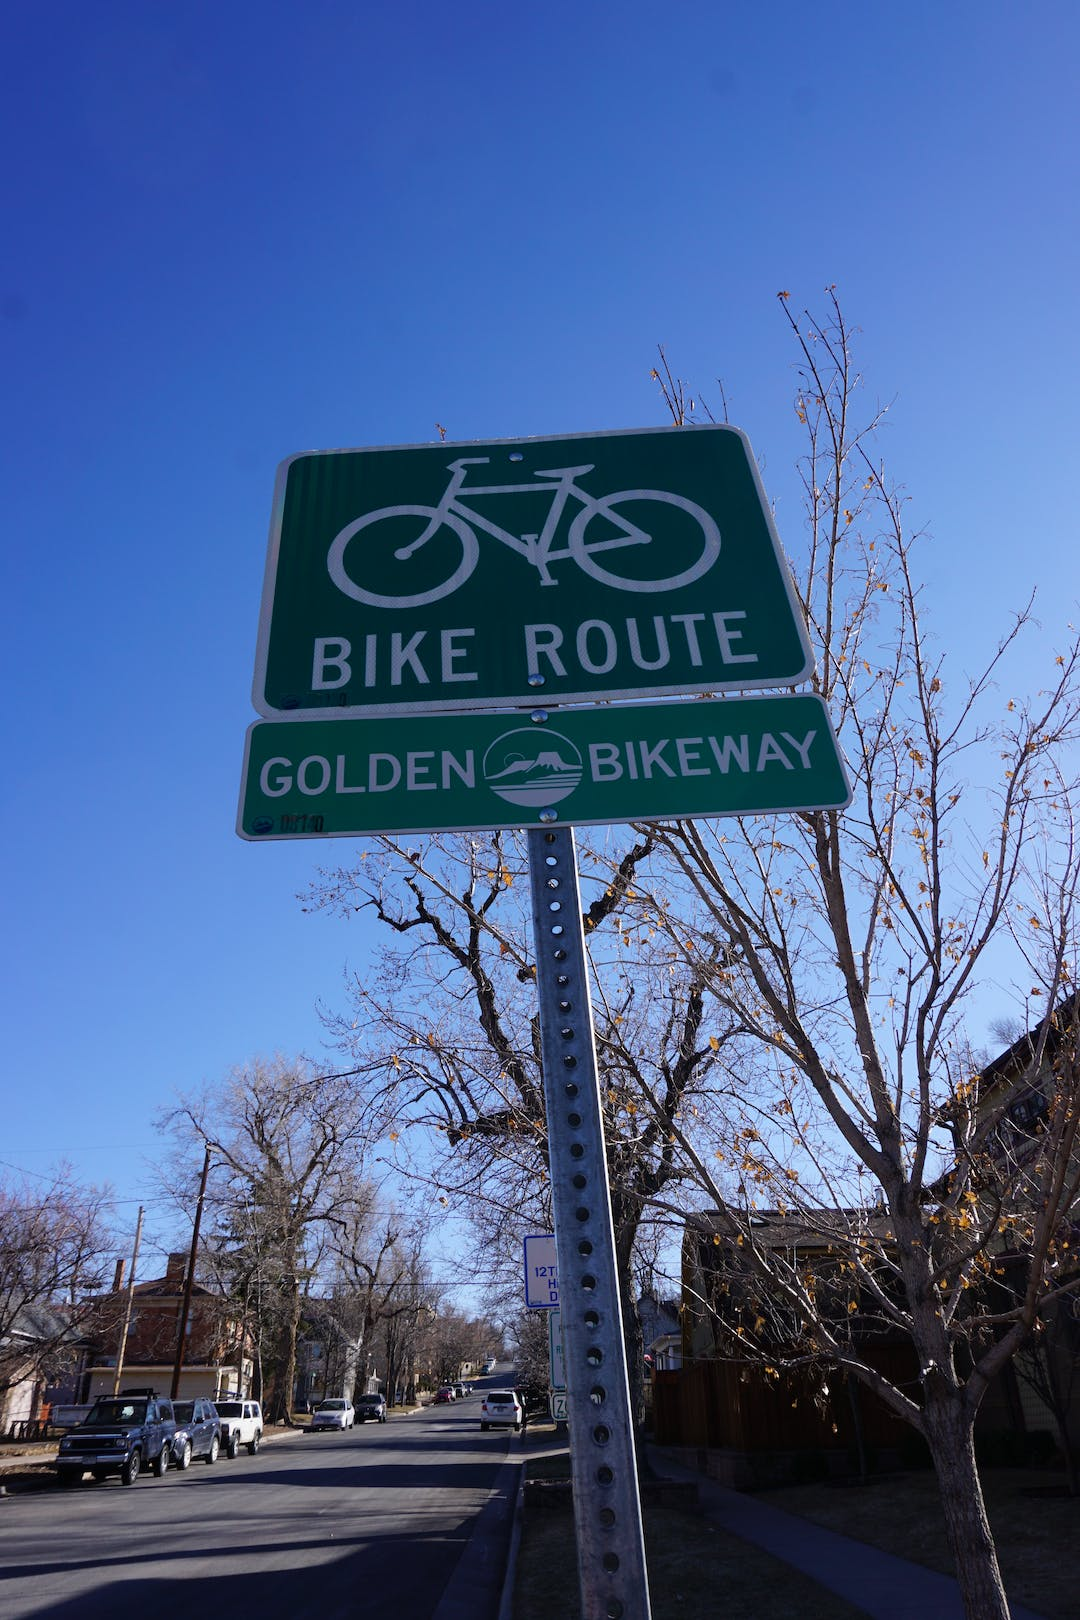 Golden Bikeway Bicycle route road sign